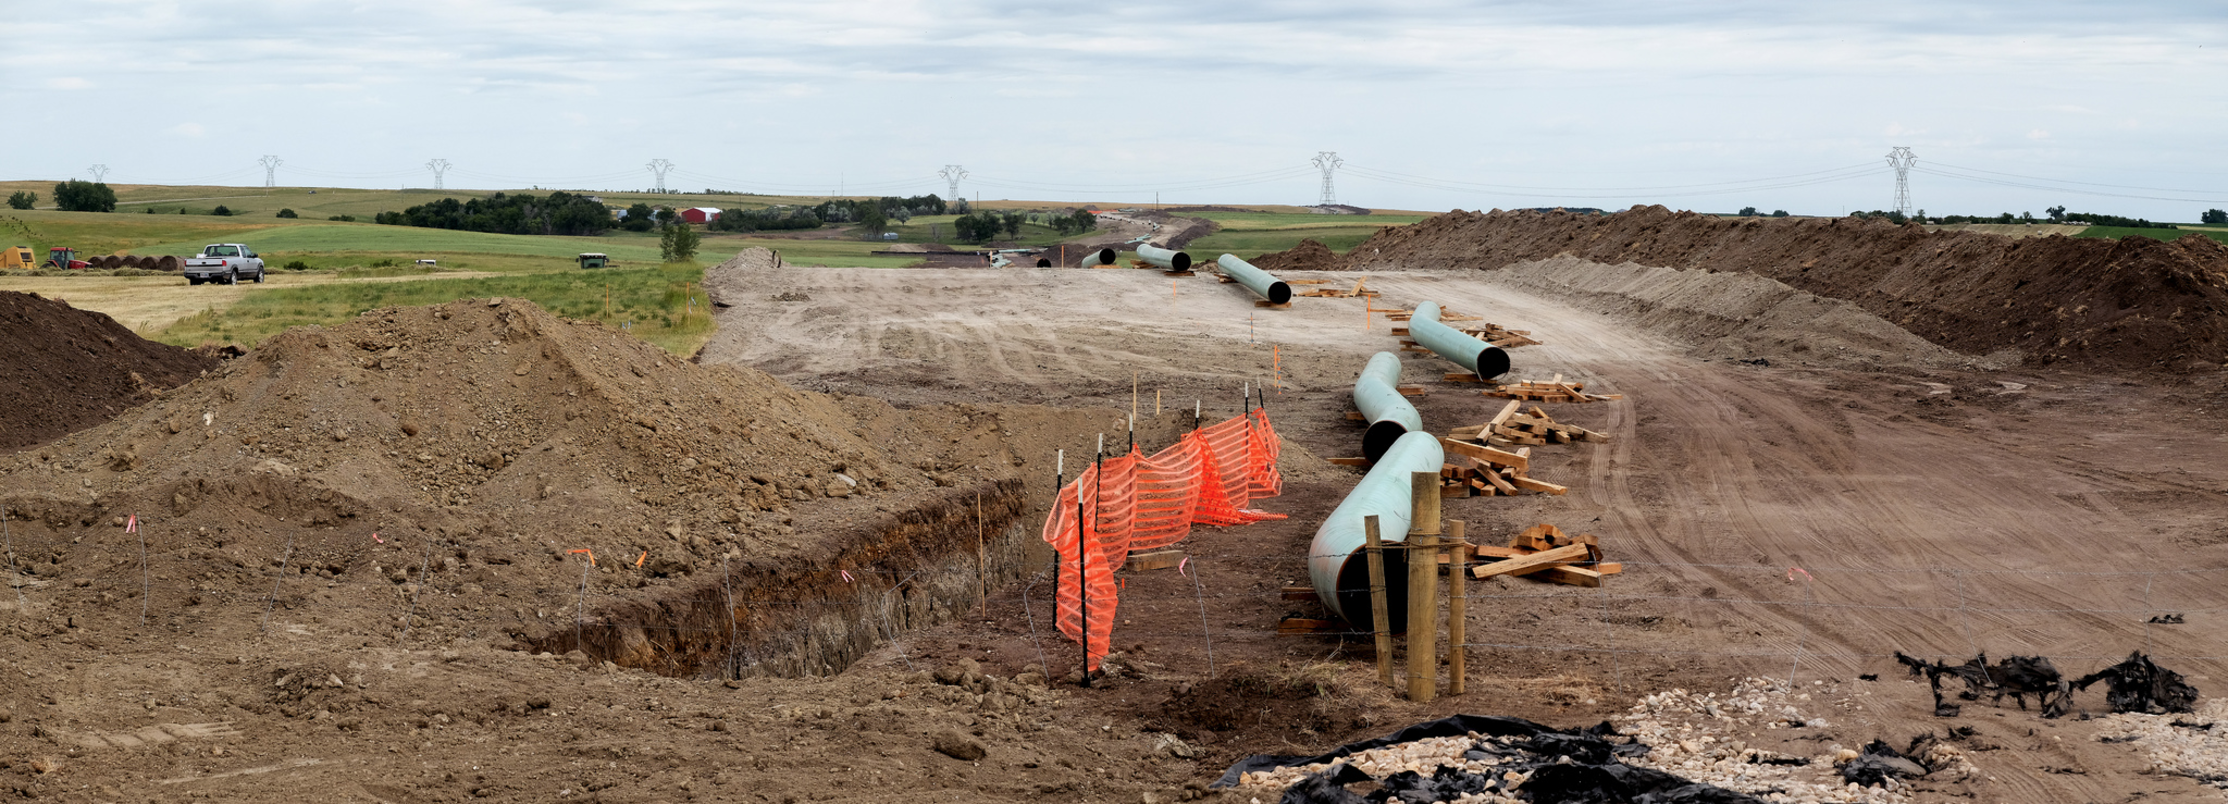 The Dakota Access Pipeline under construction